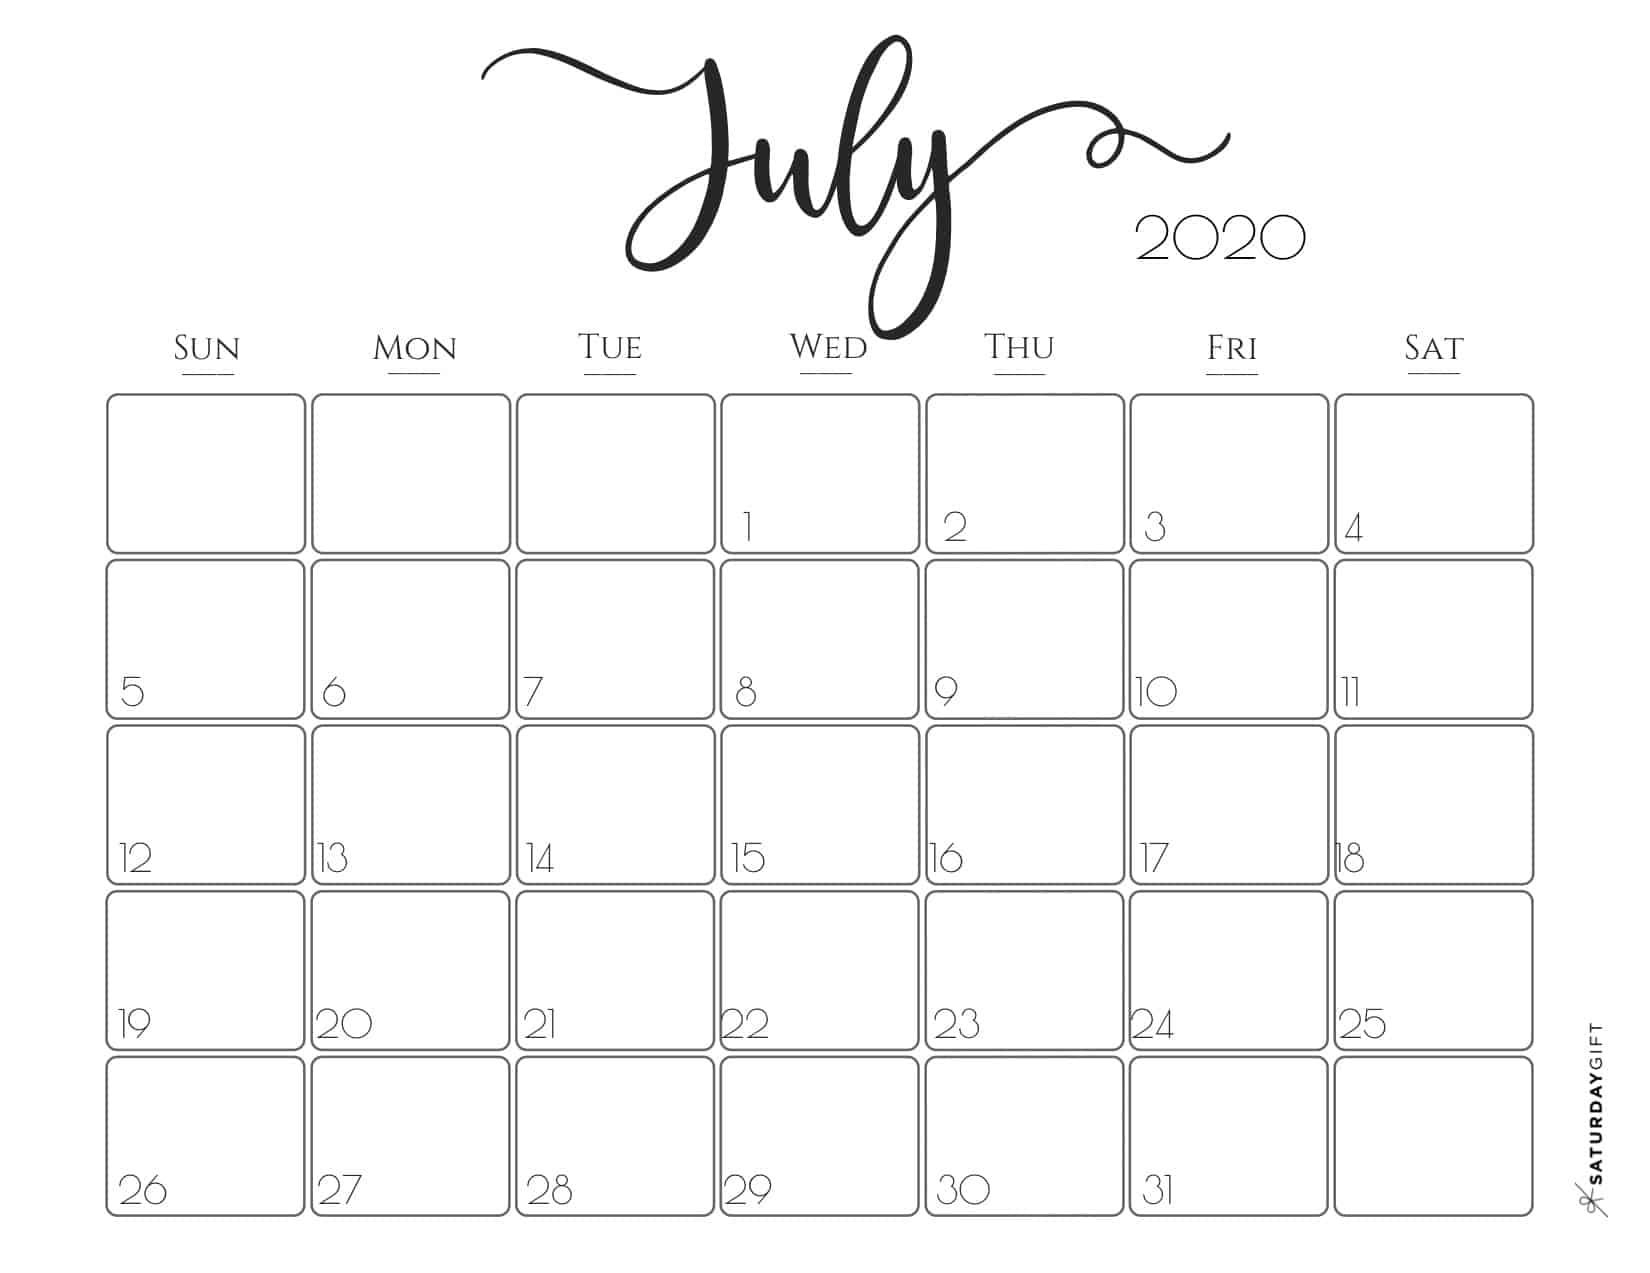 Elegant 2020 Calendar {Free Printables} In 2020 | Calendar within Print Free 2020 Calendar Without Downloading Weekly Writing